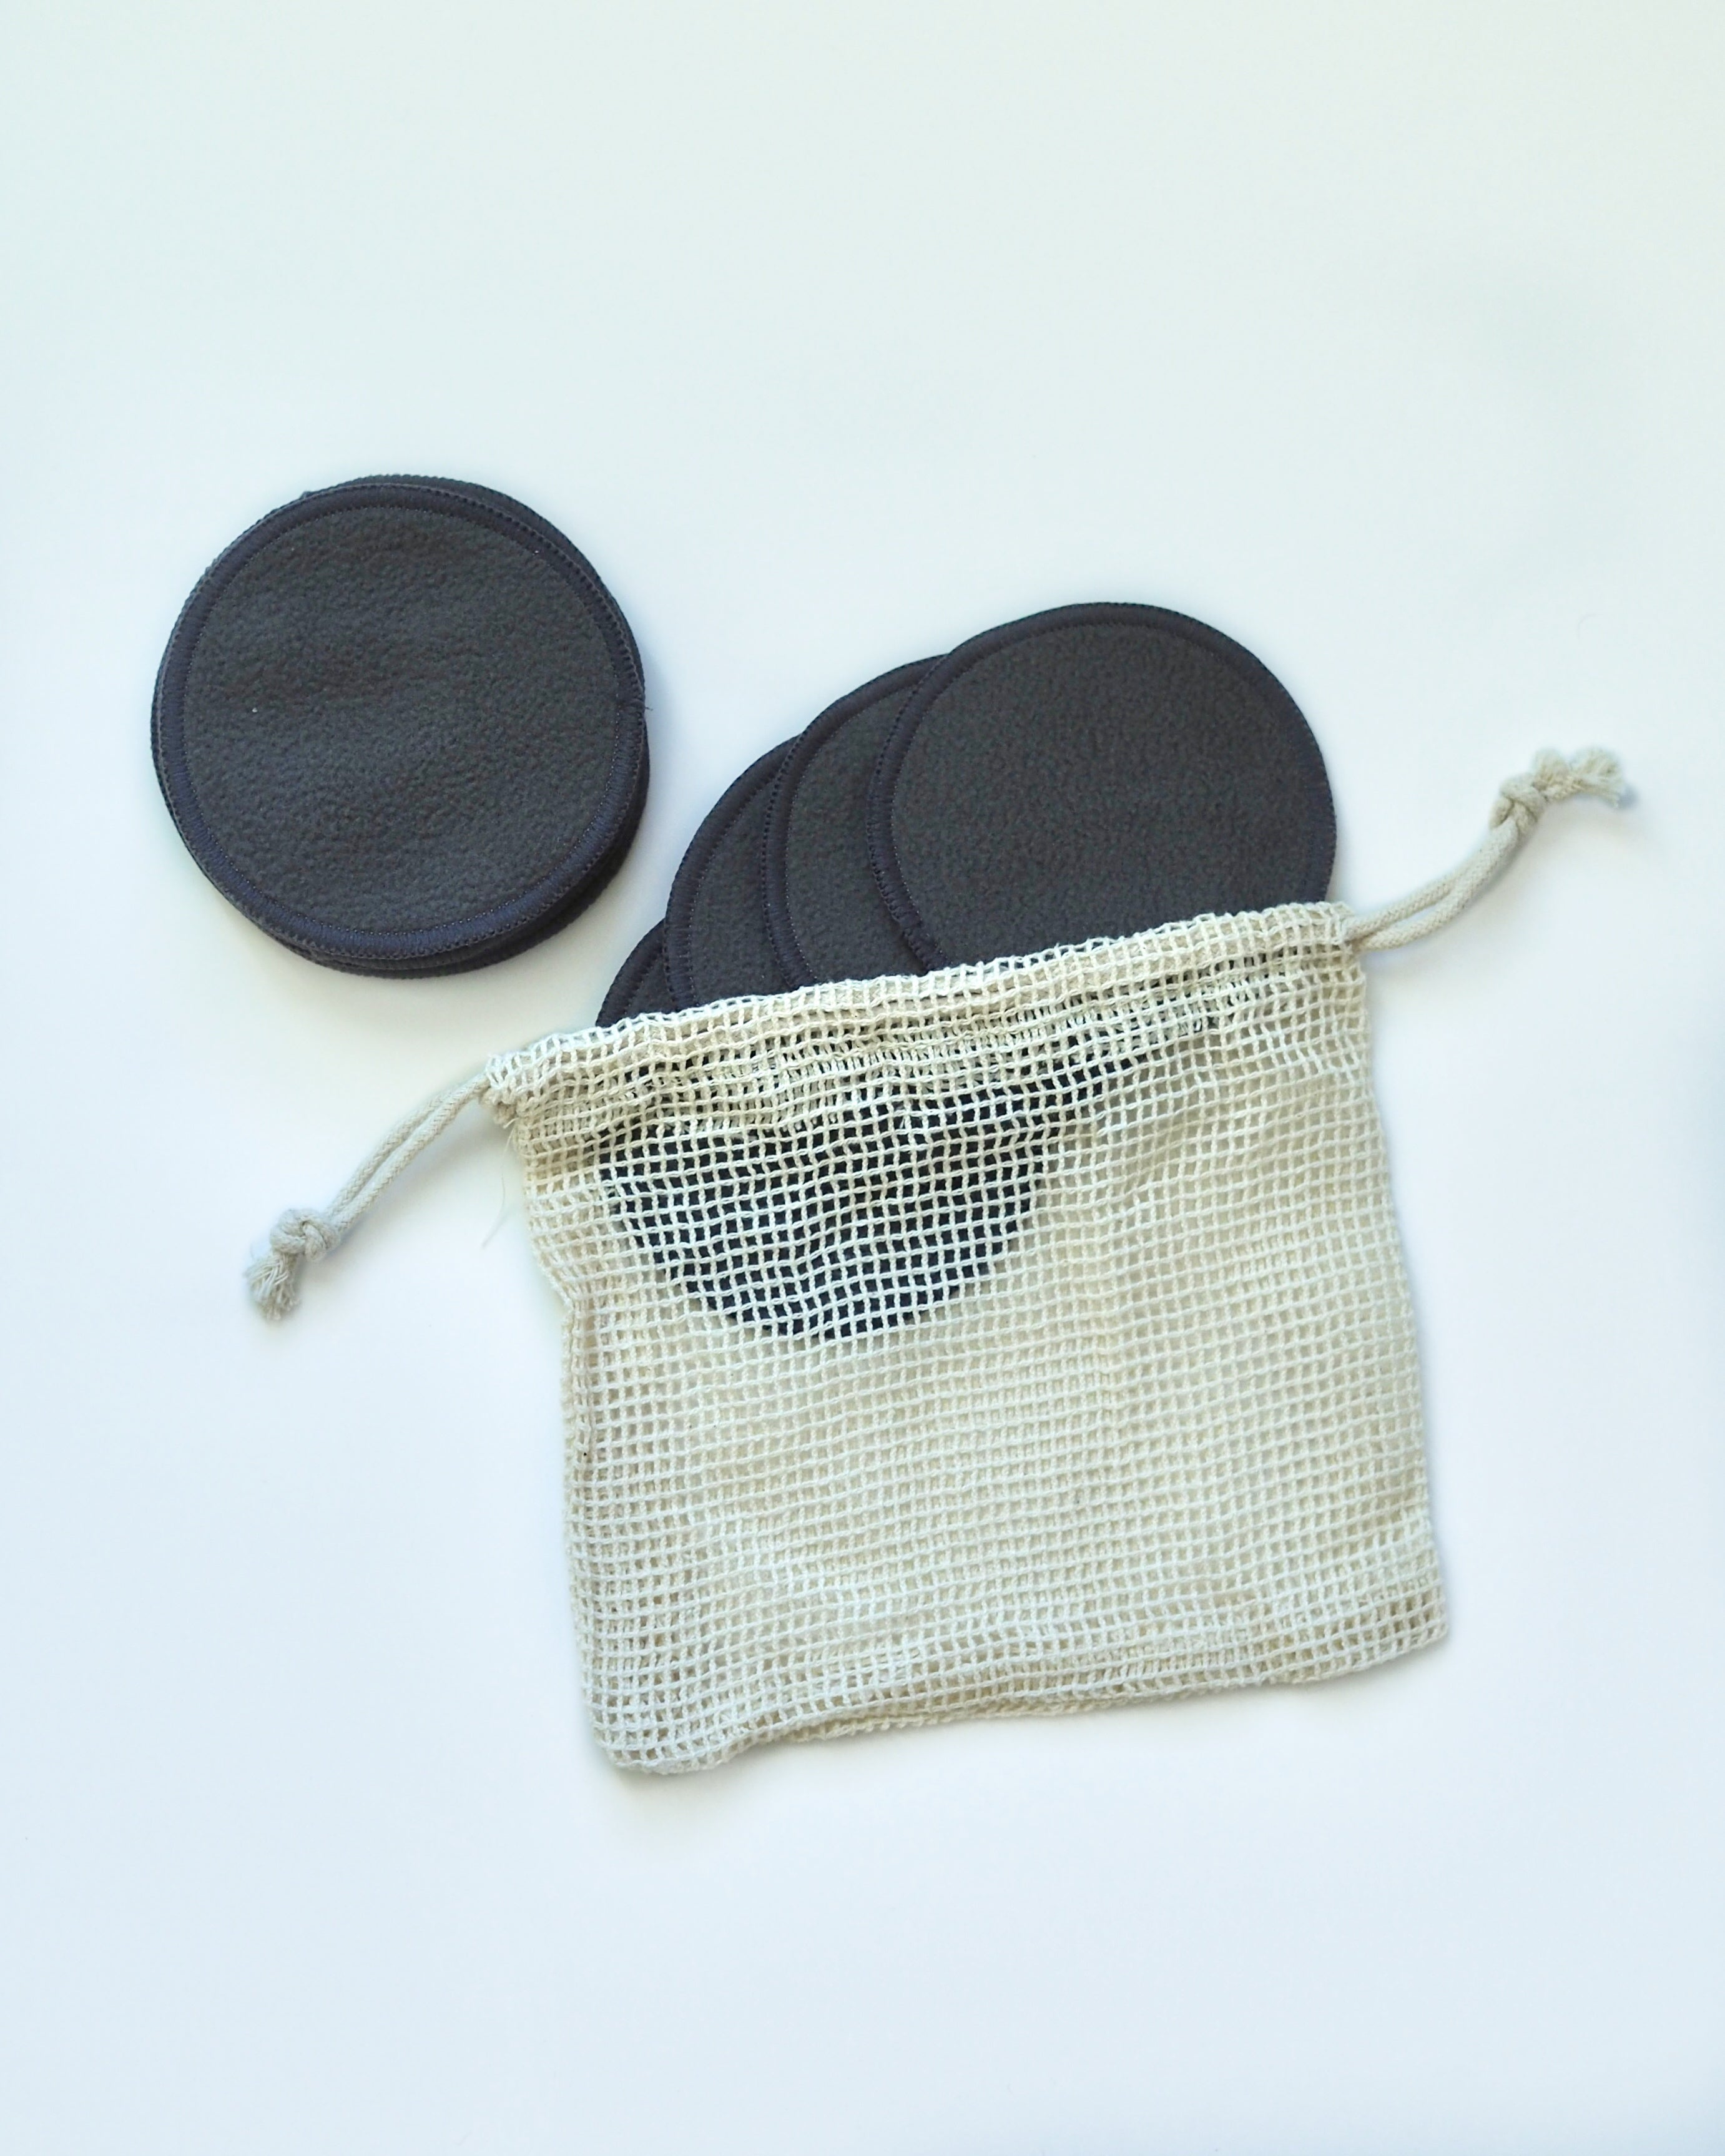 SCHMEAR Naturals Reusable Cotton Rounds with Mesh Wash Bag